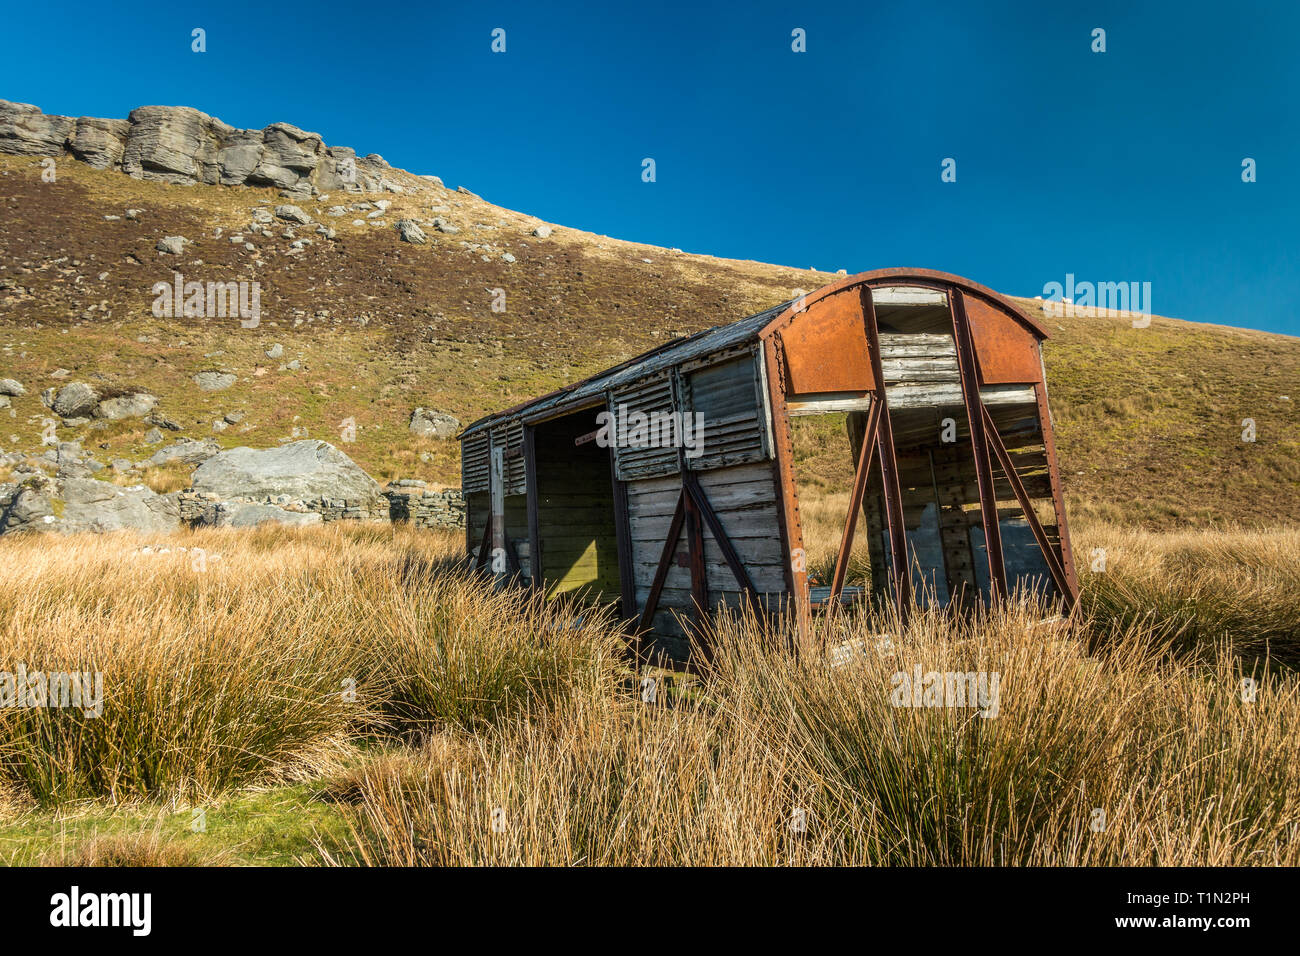 Upcycled railway goods carriage, now shed or barn, in beautiful light and blue sky on the moorland road, between Nateby and Thwaite in Upper Swaledale - Stock Image